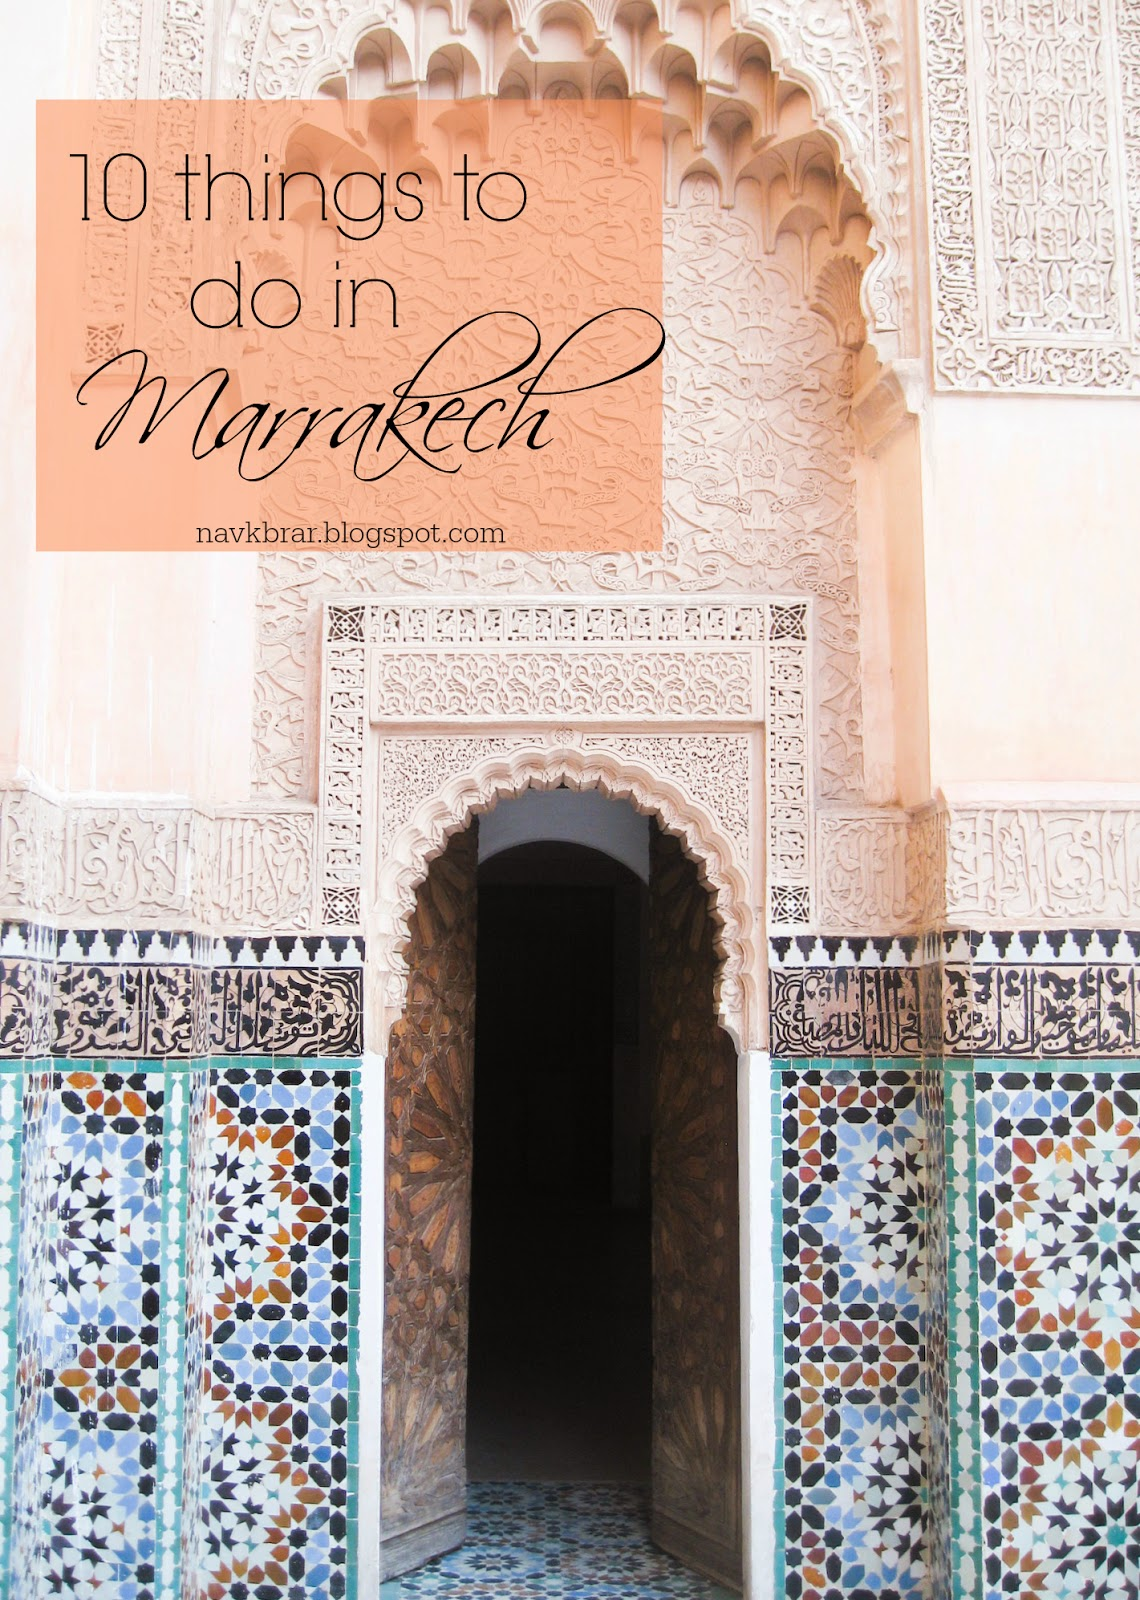 Travel ideas -10 things to do in Marrakech, Morocco (Moroccan tile work and architecure)